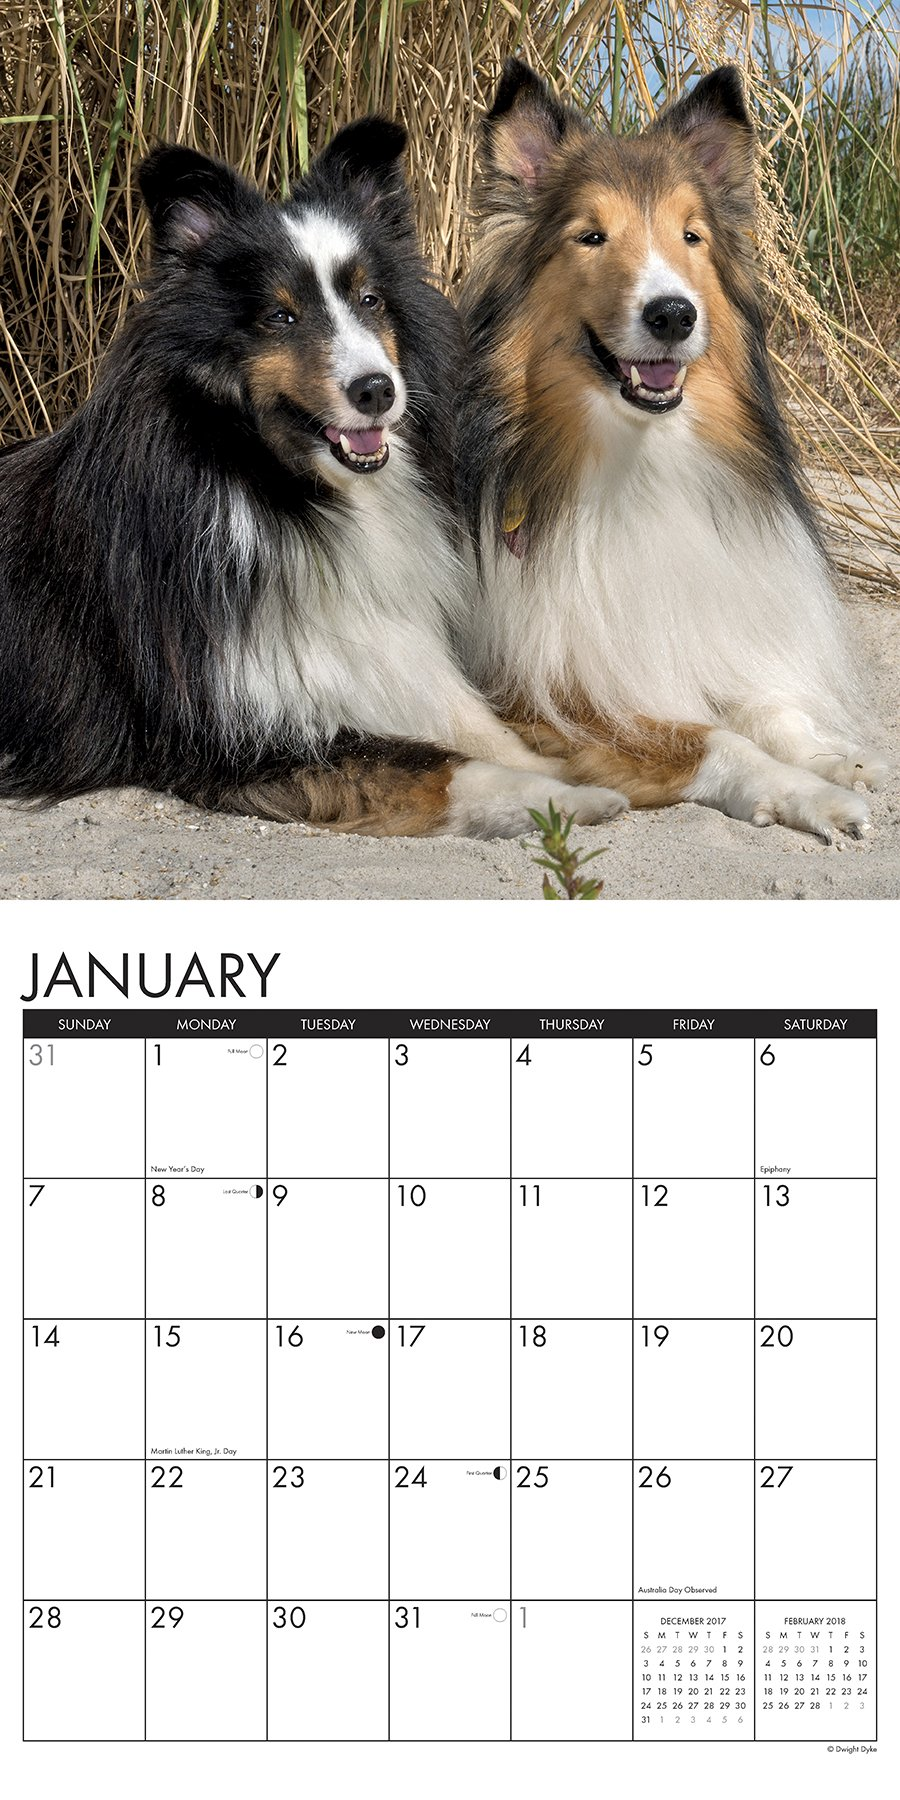 Just shelties 2018 calendar willow creek press 0709786042098 just shelties 2018 calendar willow creek press 0709786042098 amazon books nvjuhfo Images